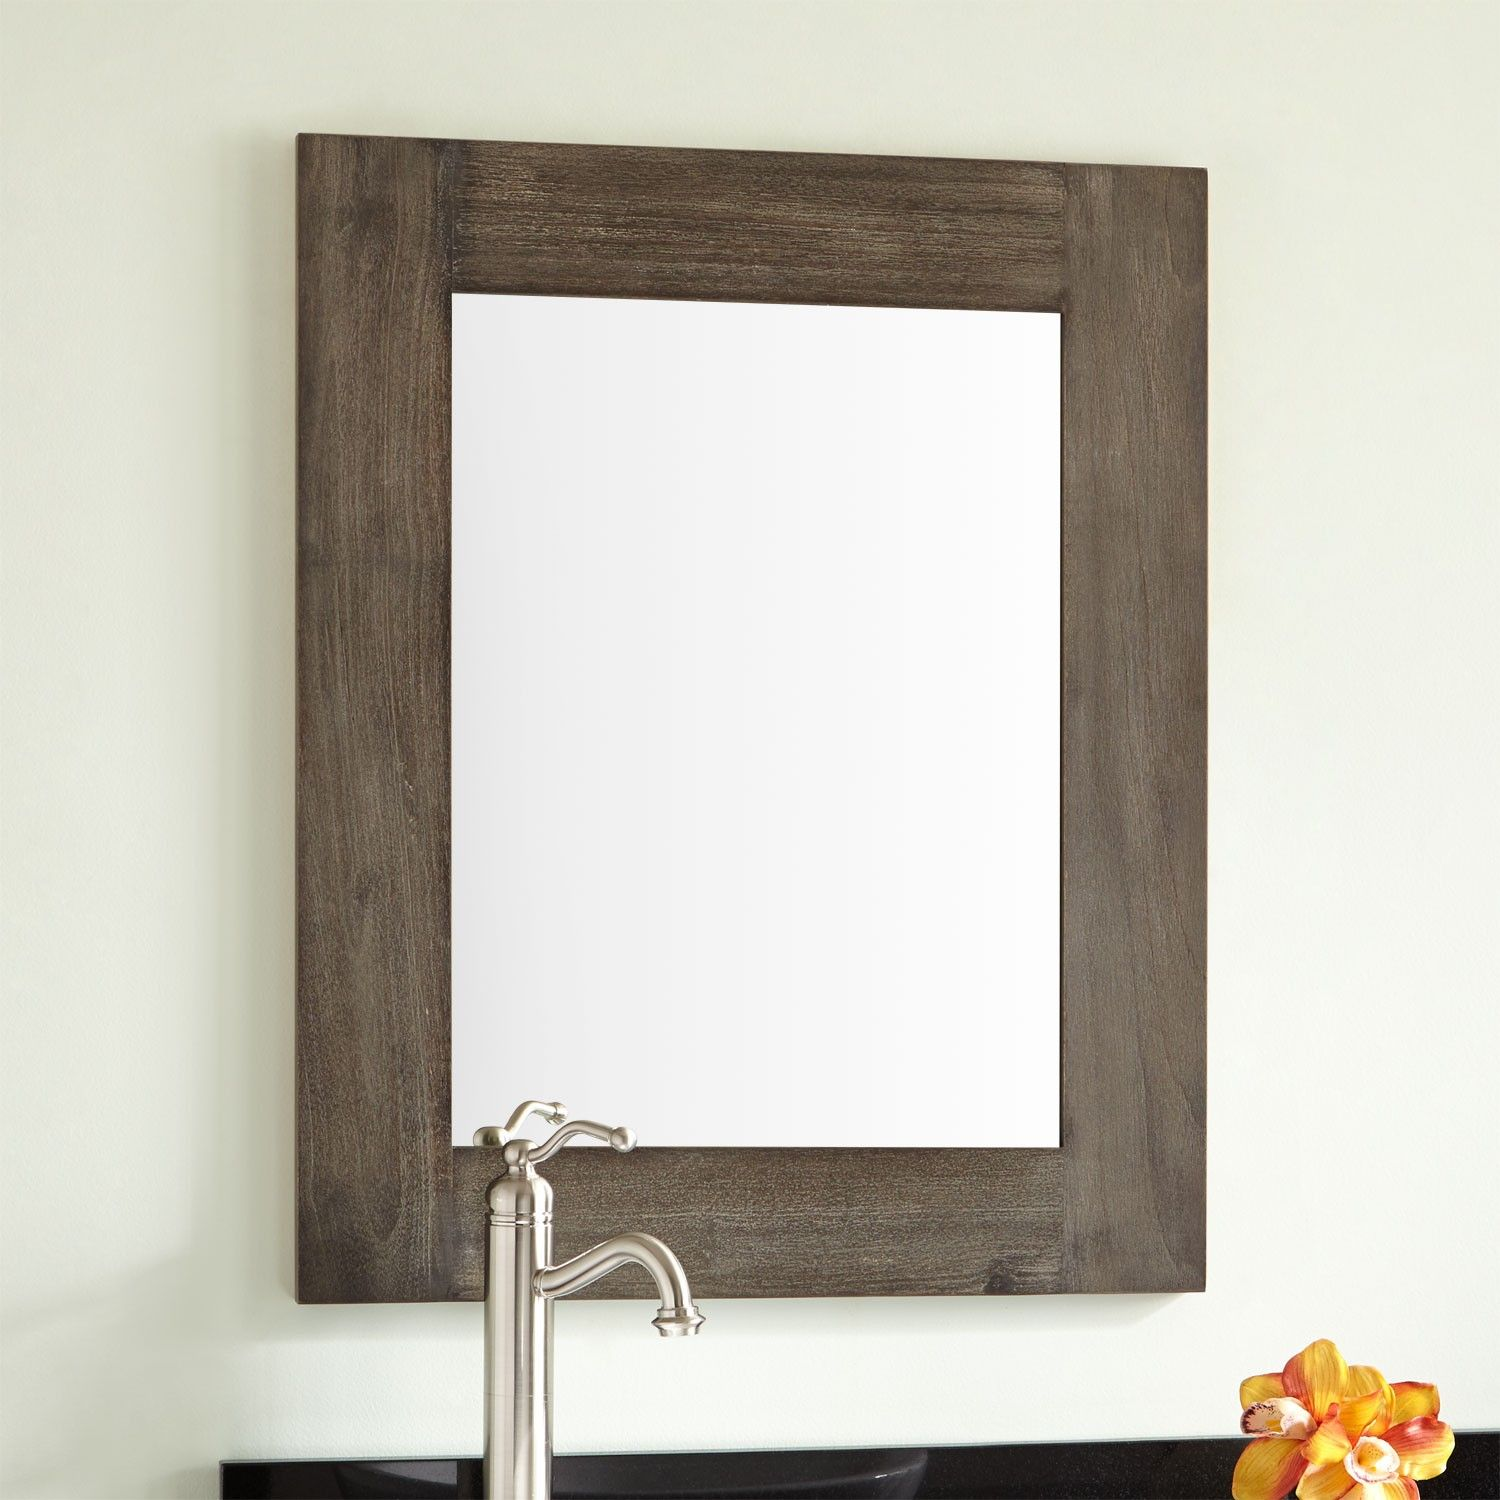 Framed Bathroom Mirrors Rustic bastian teak vanity mirror - rustic brown | brown framed mirrors